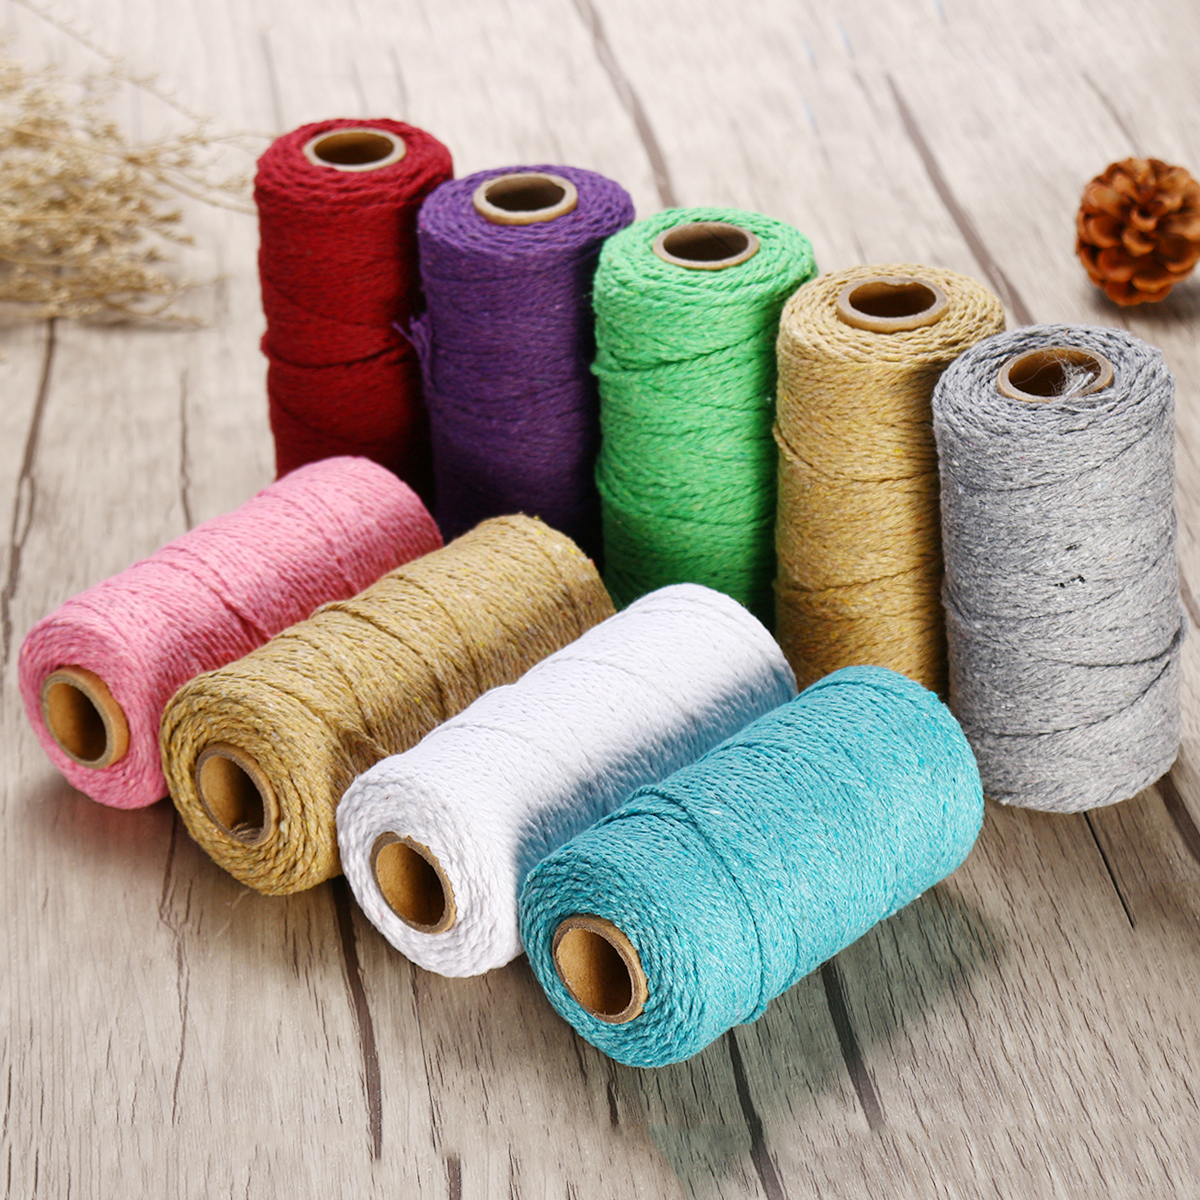 2MM Macrame Rustic Rope Colorful Cotton Twisted Cord String DIY Wedding Decor Supplies